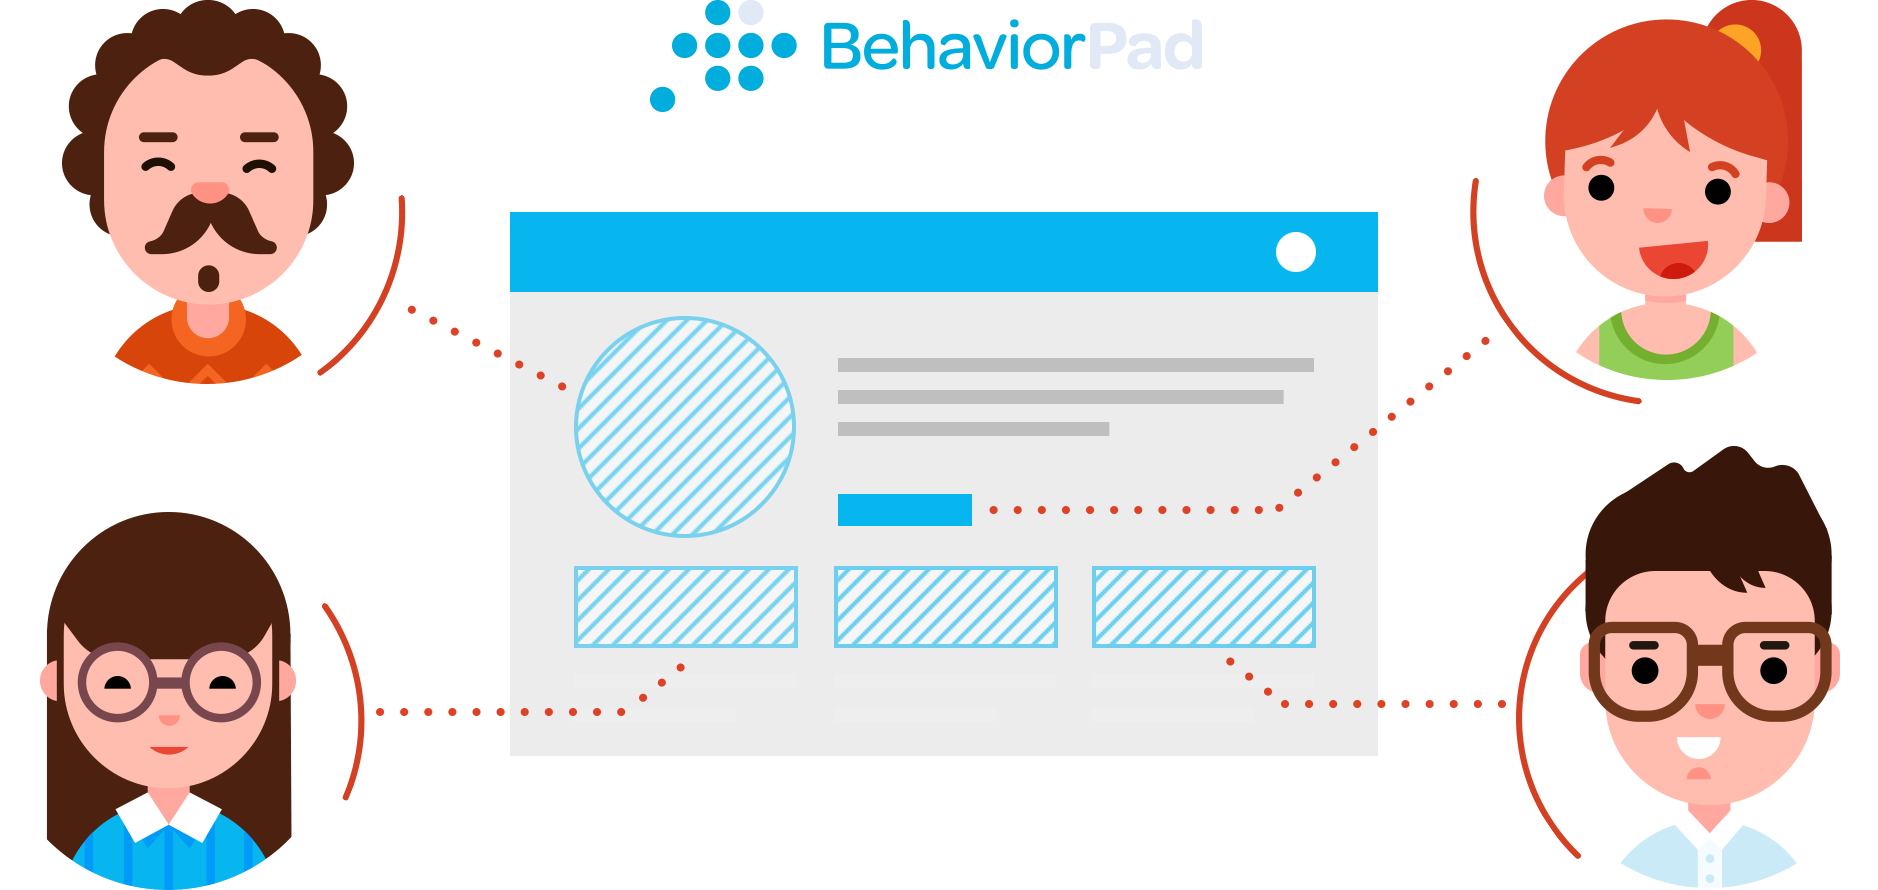 BehaviorPad